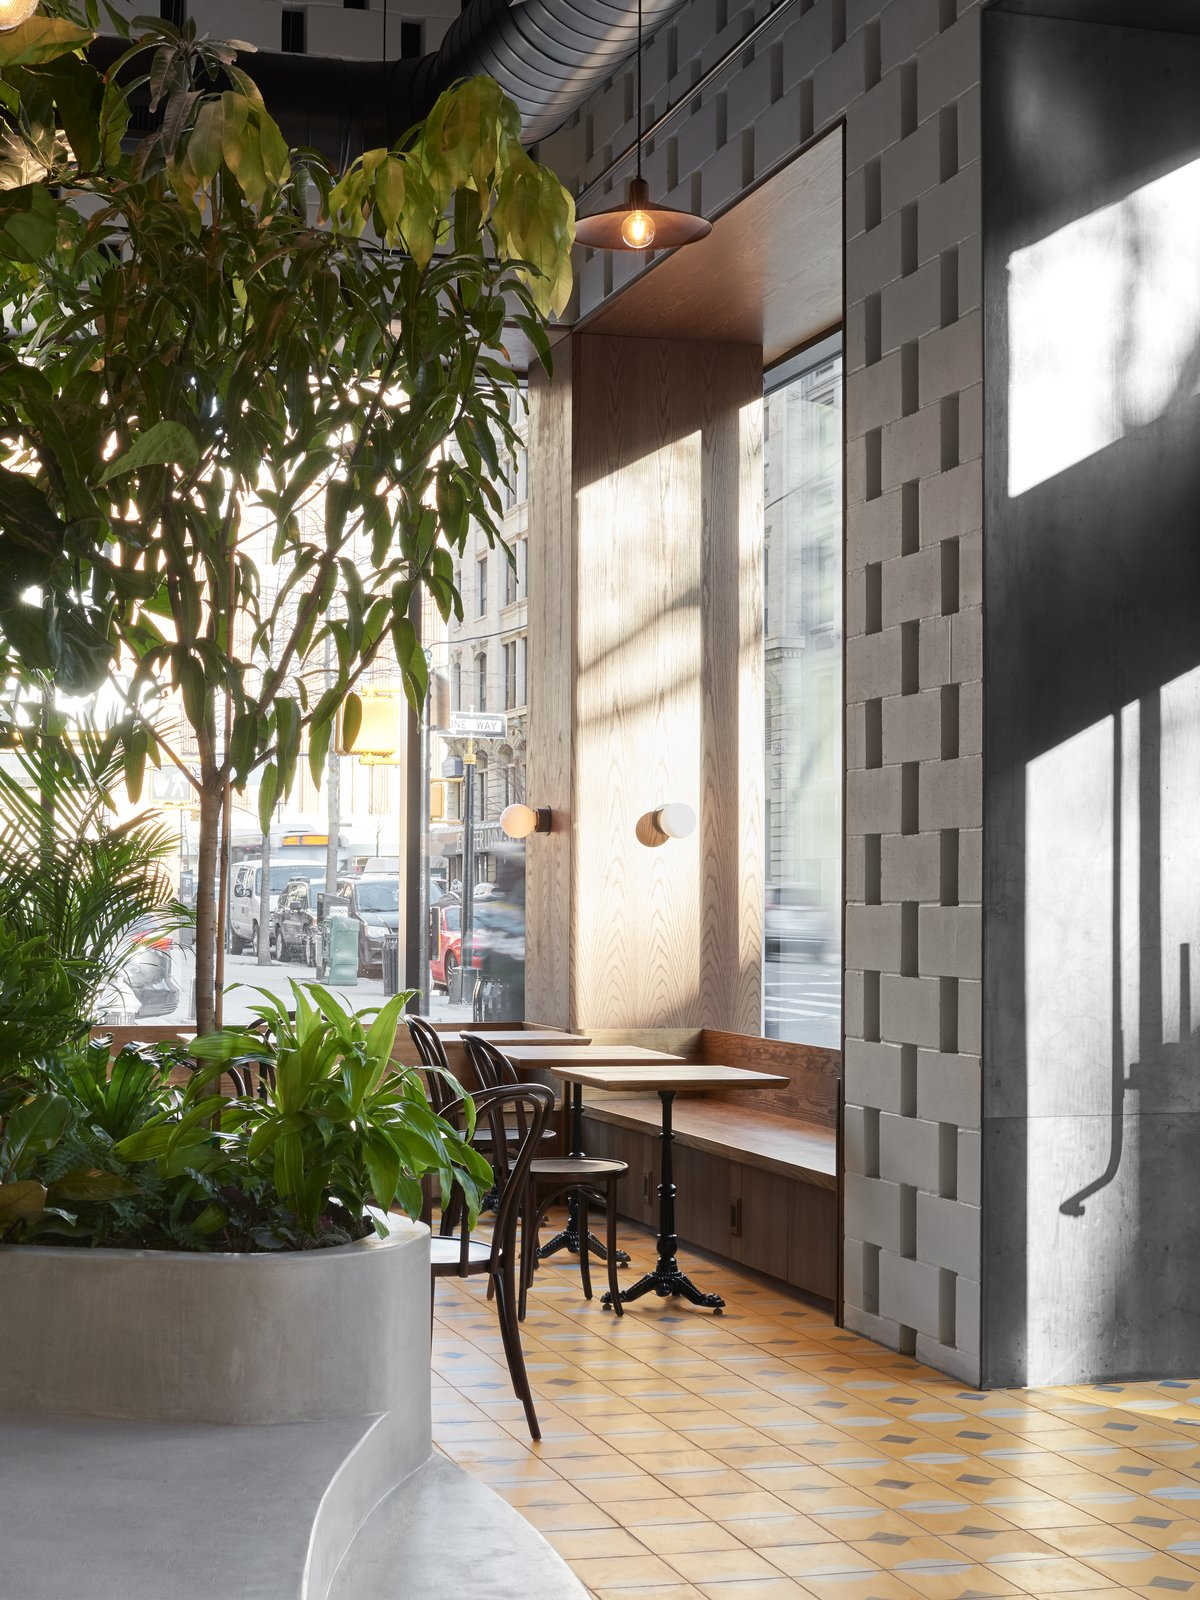 Dining, Pendant, Table, Chair, Cement Tile, Concrete, Wall, and Bench Large expanses of glass provide ample natural light, adding to the tropical vibe.     Best Dining Cement Tile Wall Photos from This New Brooklyn Cafe Is Brewing Up More Than Tasty Artisanal Coffee